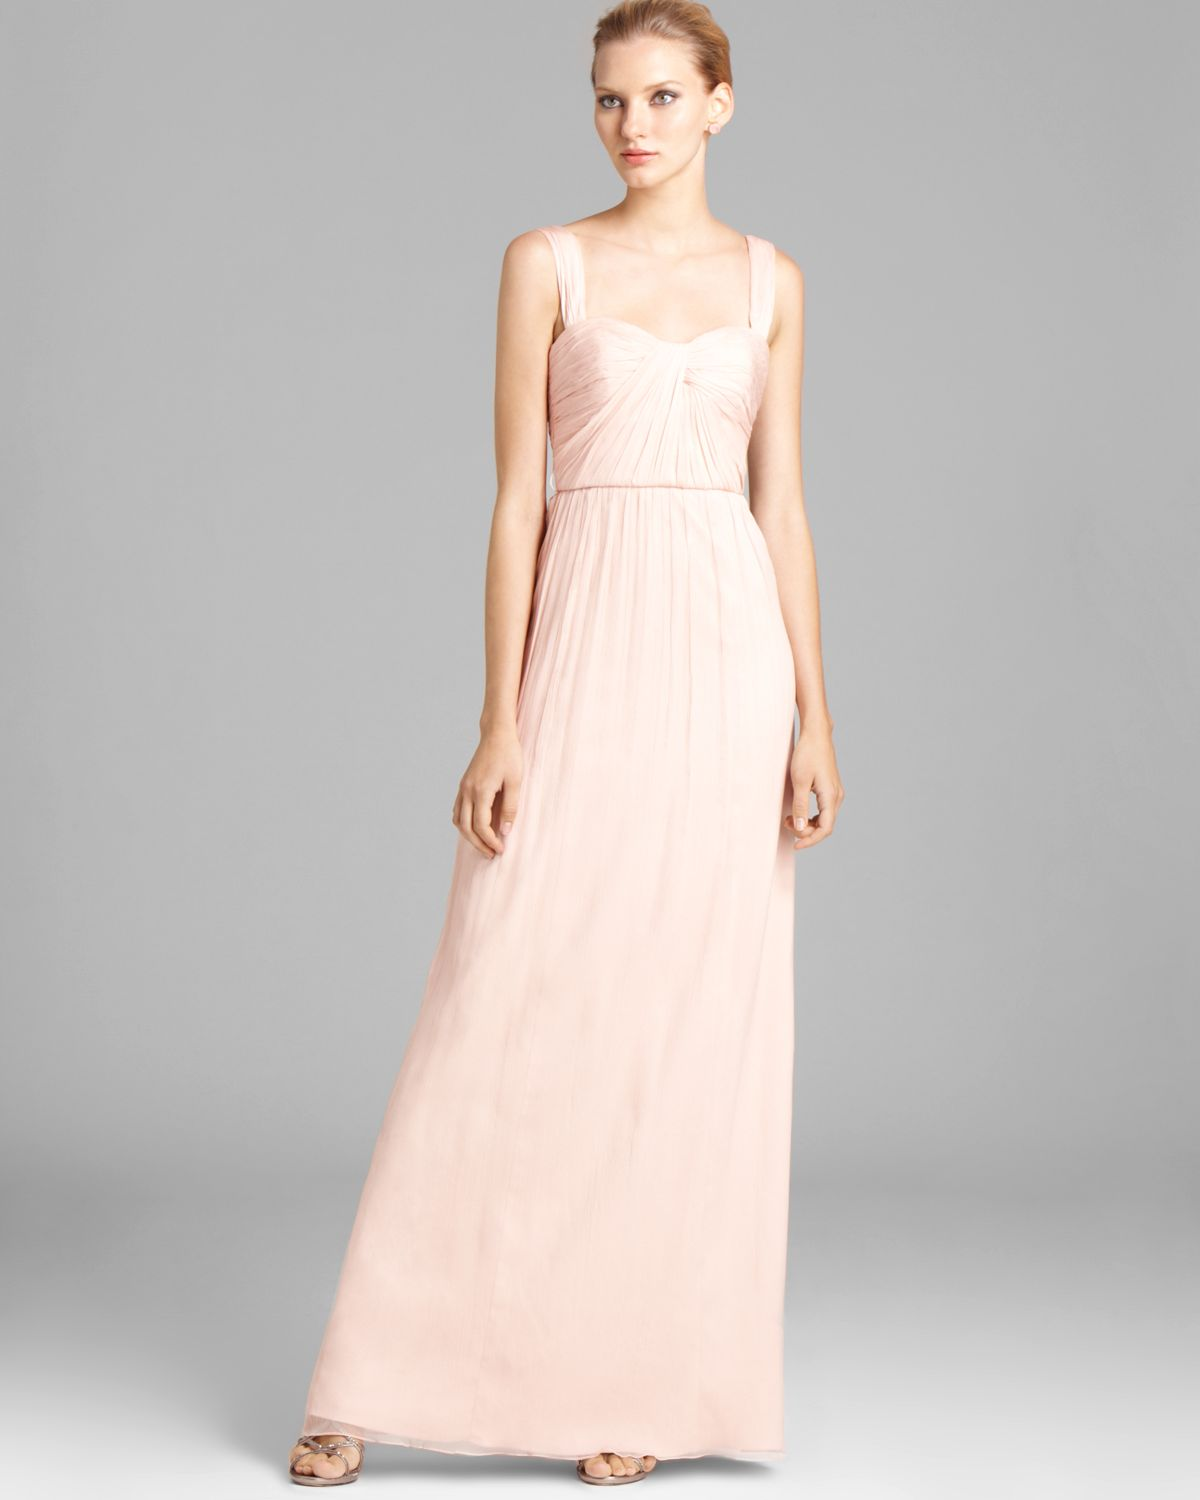 Colorful Amsale One Shoulder Chiffon Gown Images - Wedding and ...